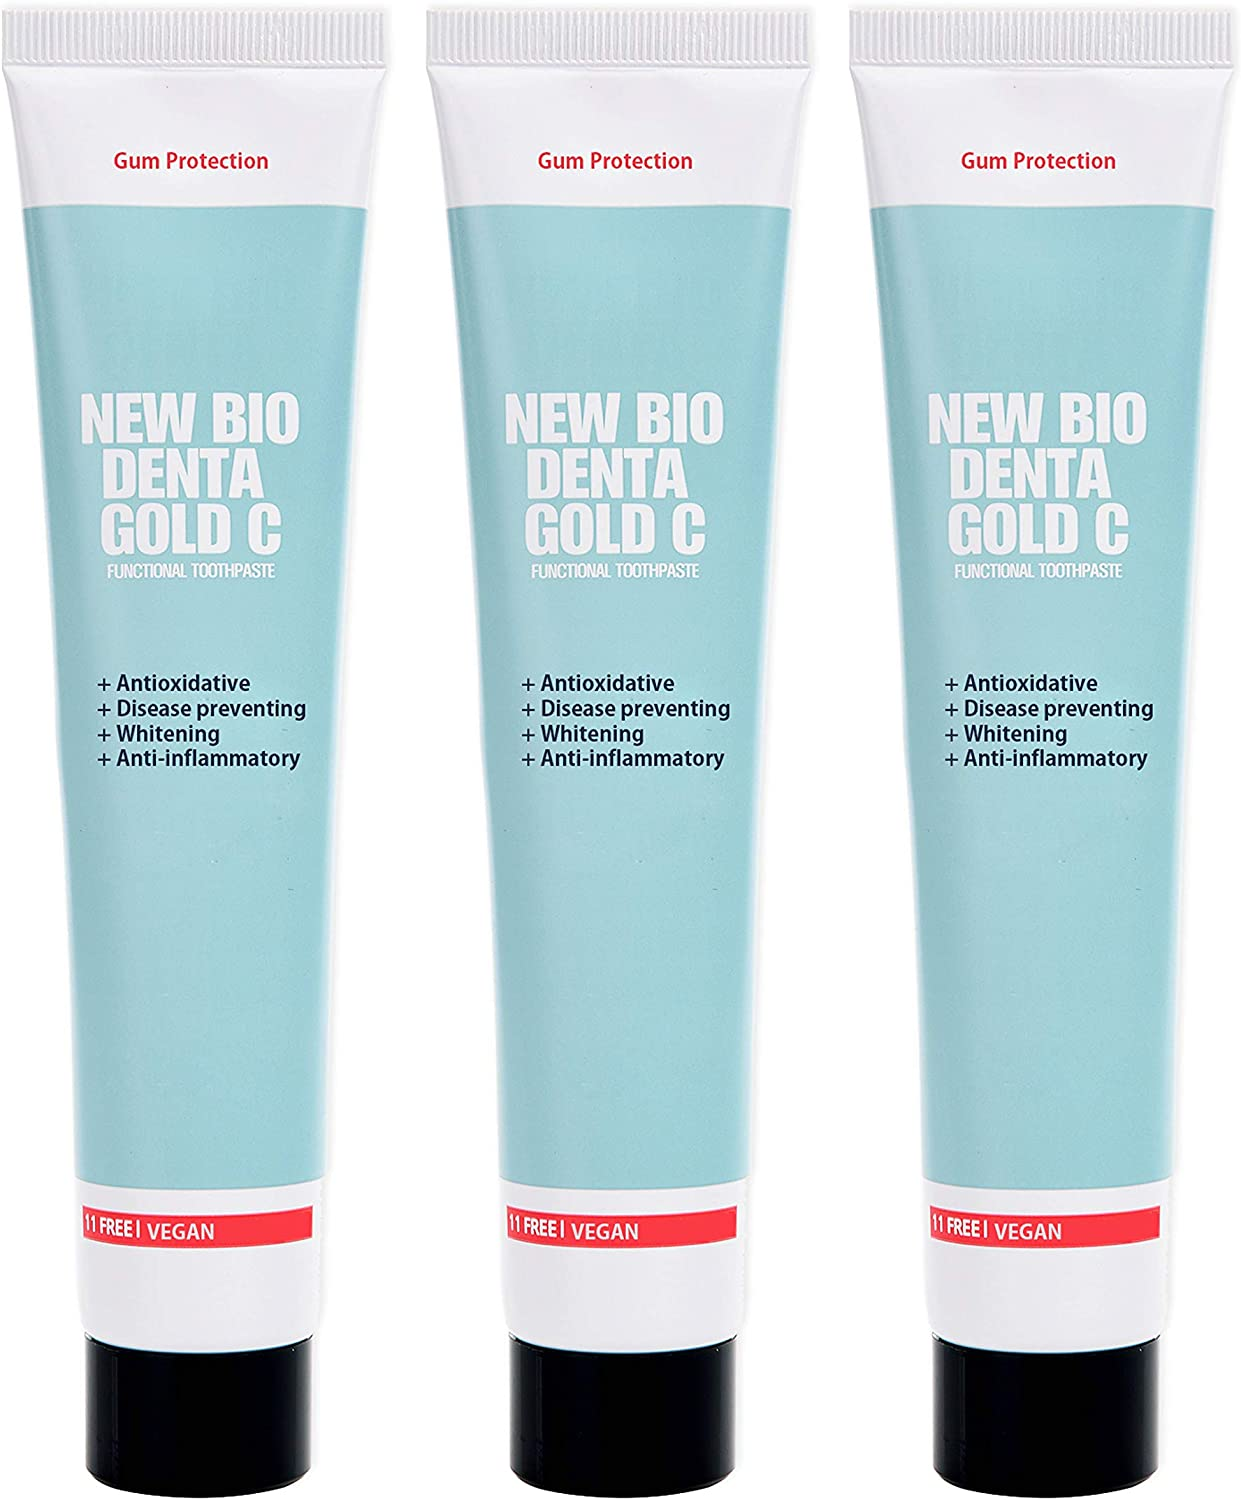 New Bio Denta Gold C Sensitive Toothpaste with Myrrh, Vitamin B and C, Fluoride Free and Vegan Friendly, Natural Whitening Support to Fight Gum Disease and Bad Breath